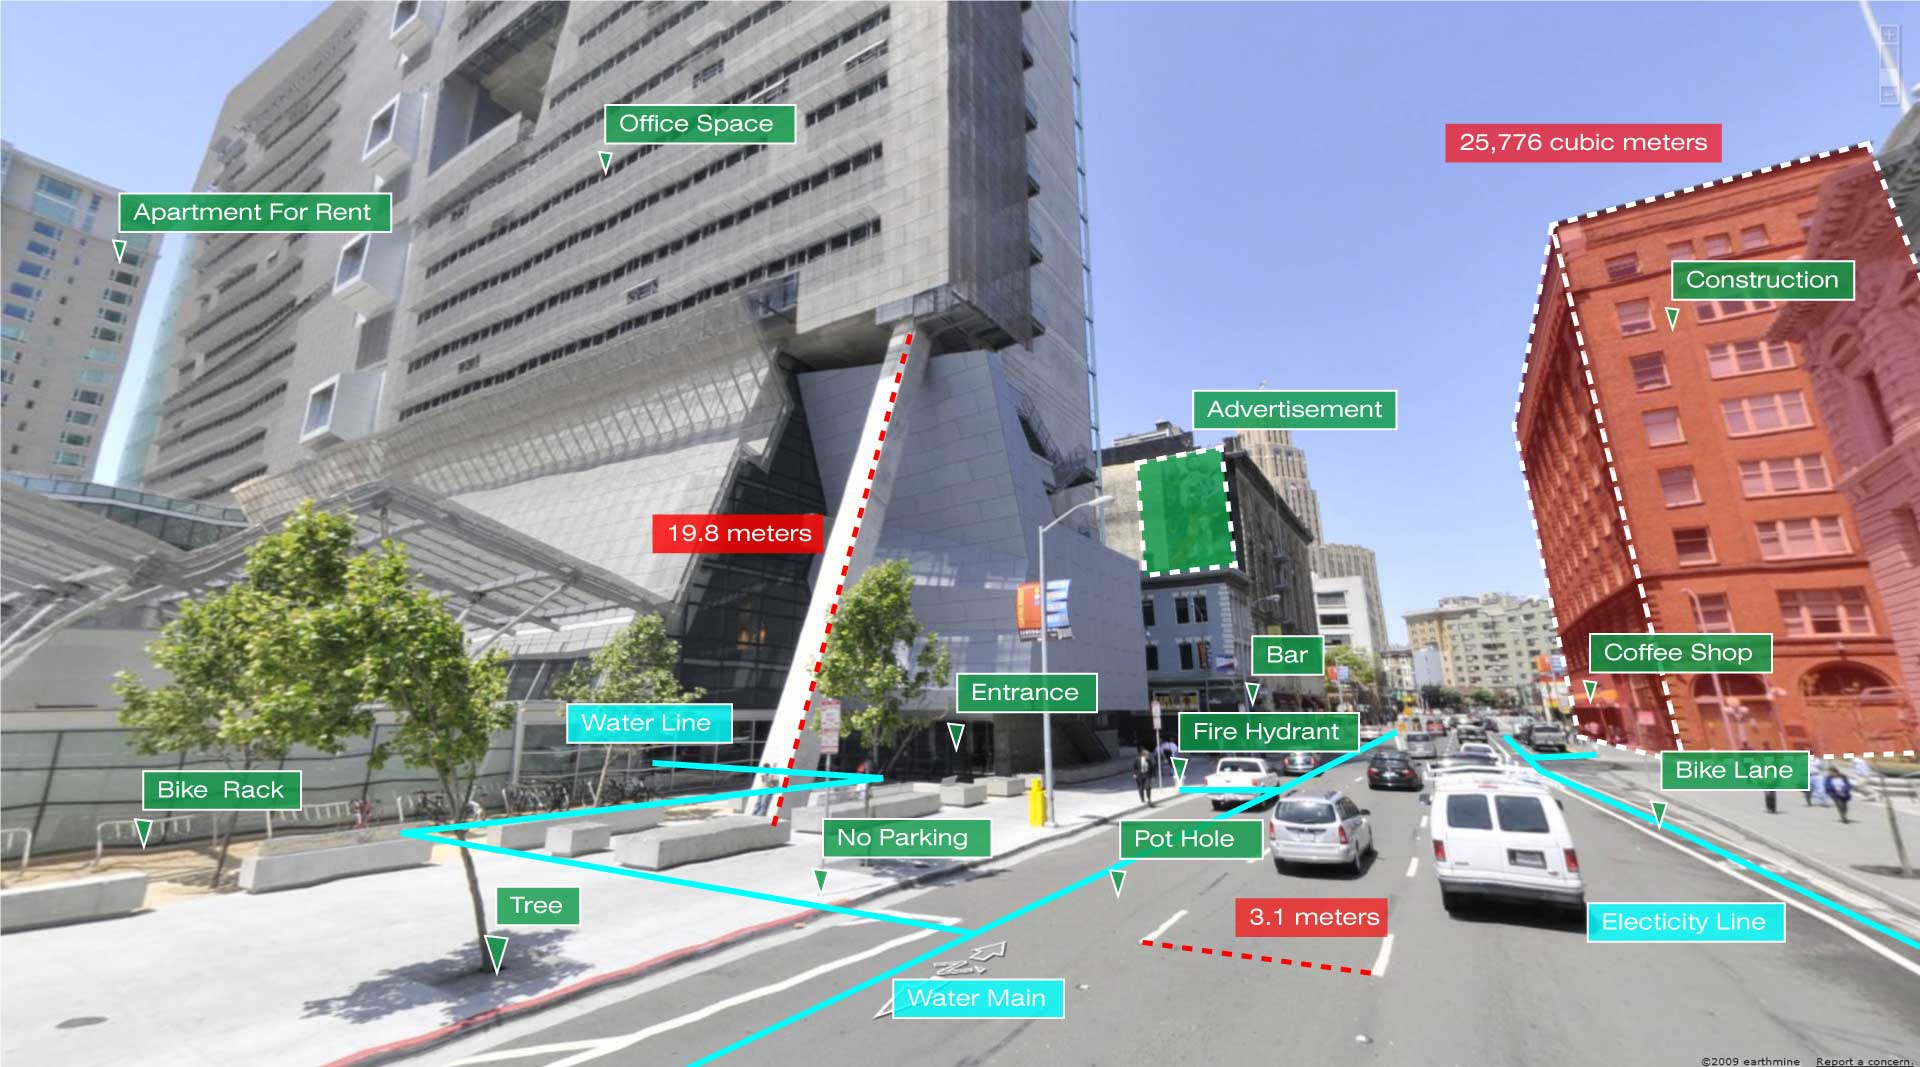 Srushti, Srushti IMX, IMX, Augmented Reality, Augmented Reality Applications, Augmented Reality and It's Various Applications, 3D virtual room, moving paintings, holographic display, 3D holographic